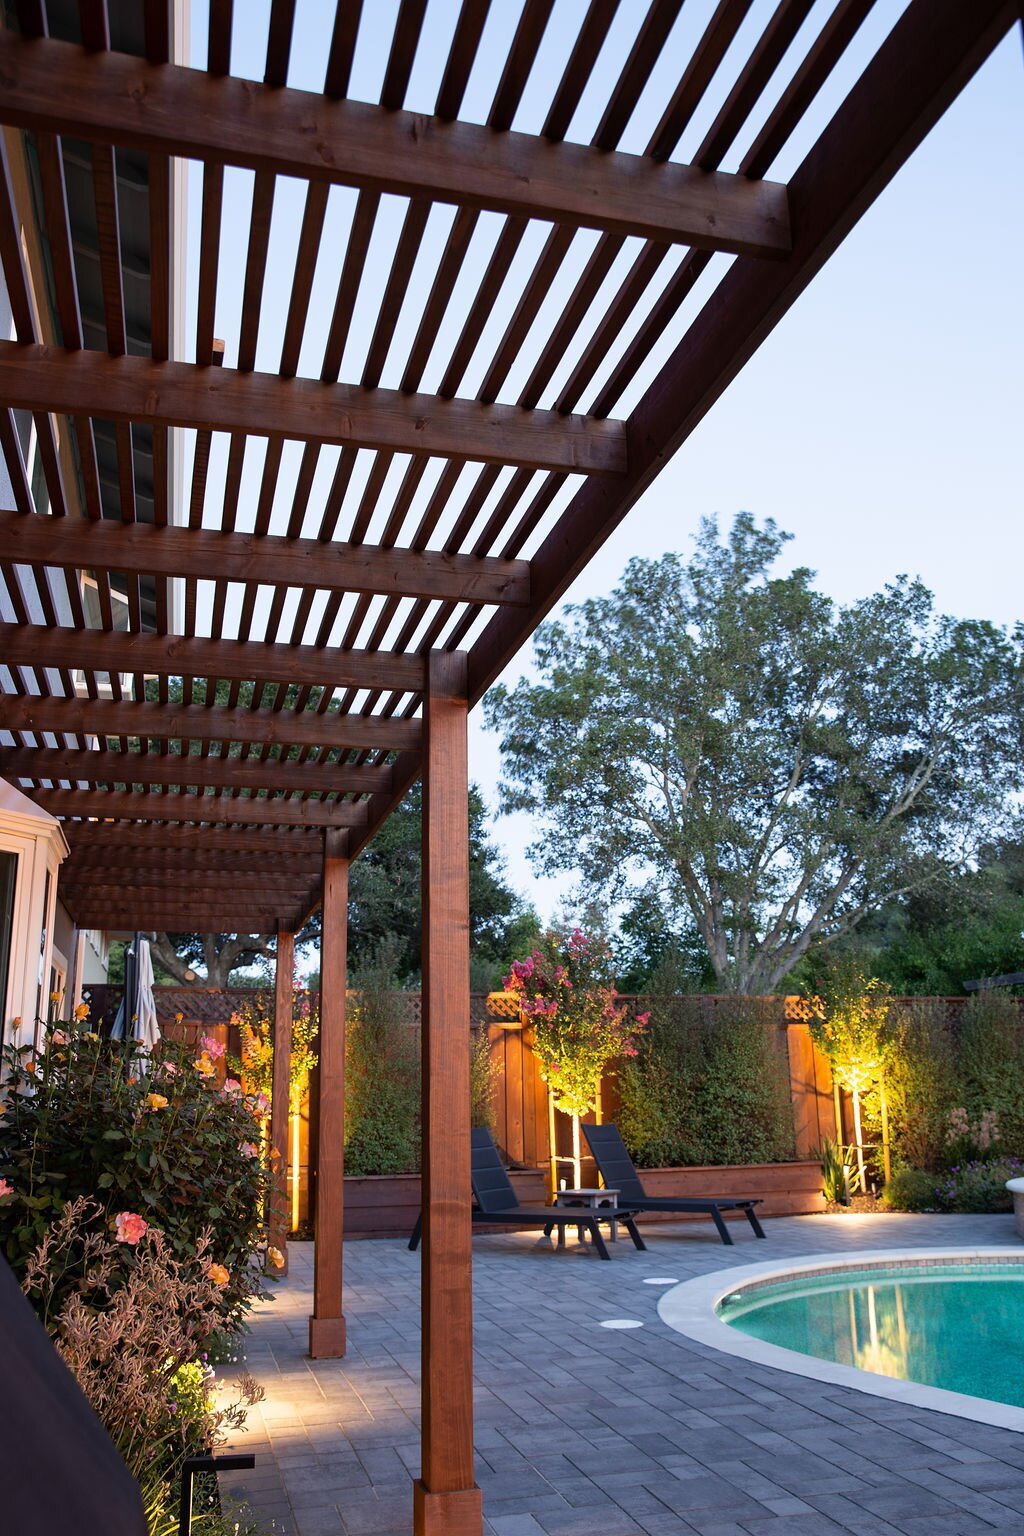 Outdoor, Shrubs, Back Yard, Hardscapes, Trees, Gardens, Garden, Pavers Patio, Porch, Deck, Small Patio, Porch, Deck, Small Pools, Tubs, Shower, and Landscape Lighting A new wood pergola provides shade to the house.  Modern Suburban Backyard